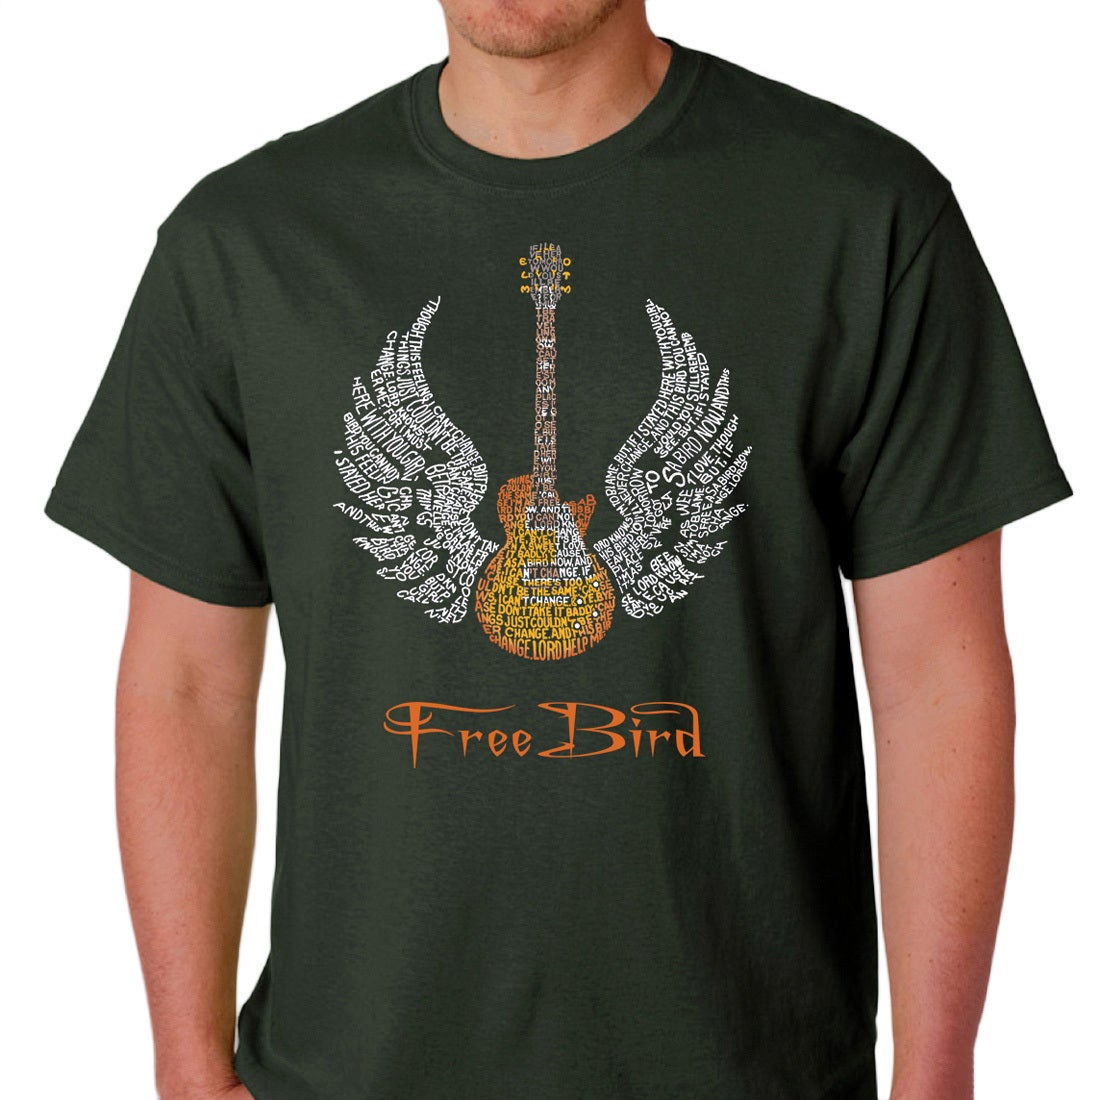 5f182e56729 Skynyrd-Mens-Rock-Roll-Freebird-Lyric-T-shirt -00a7c904-de12-468a-998a-5c0806b3ec29.jpg